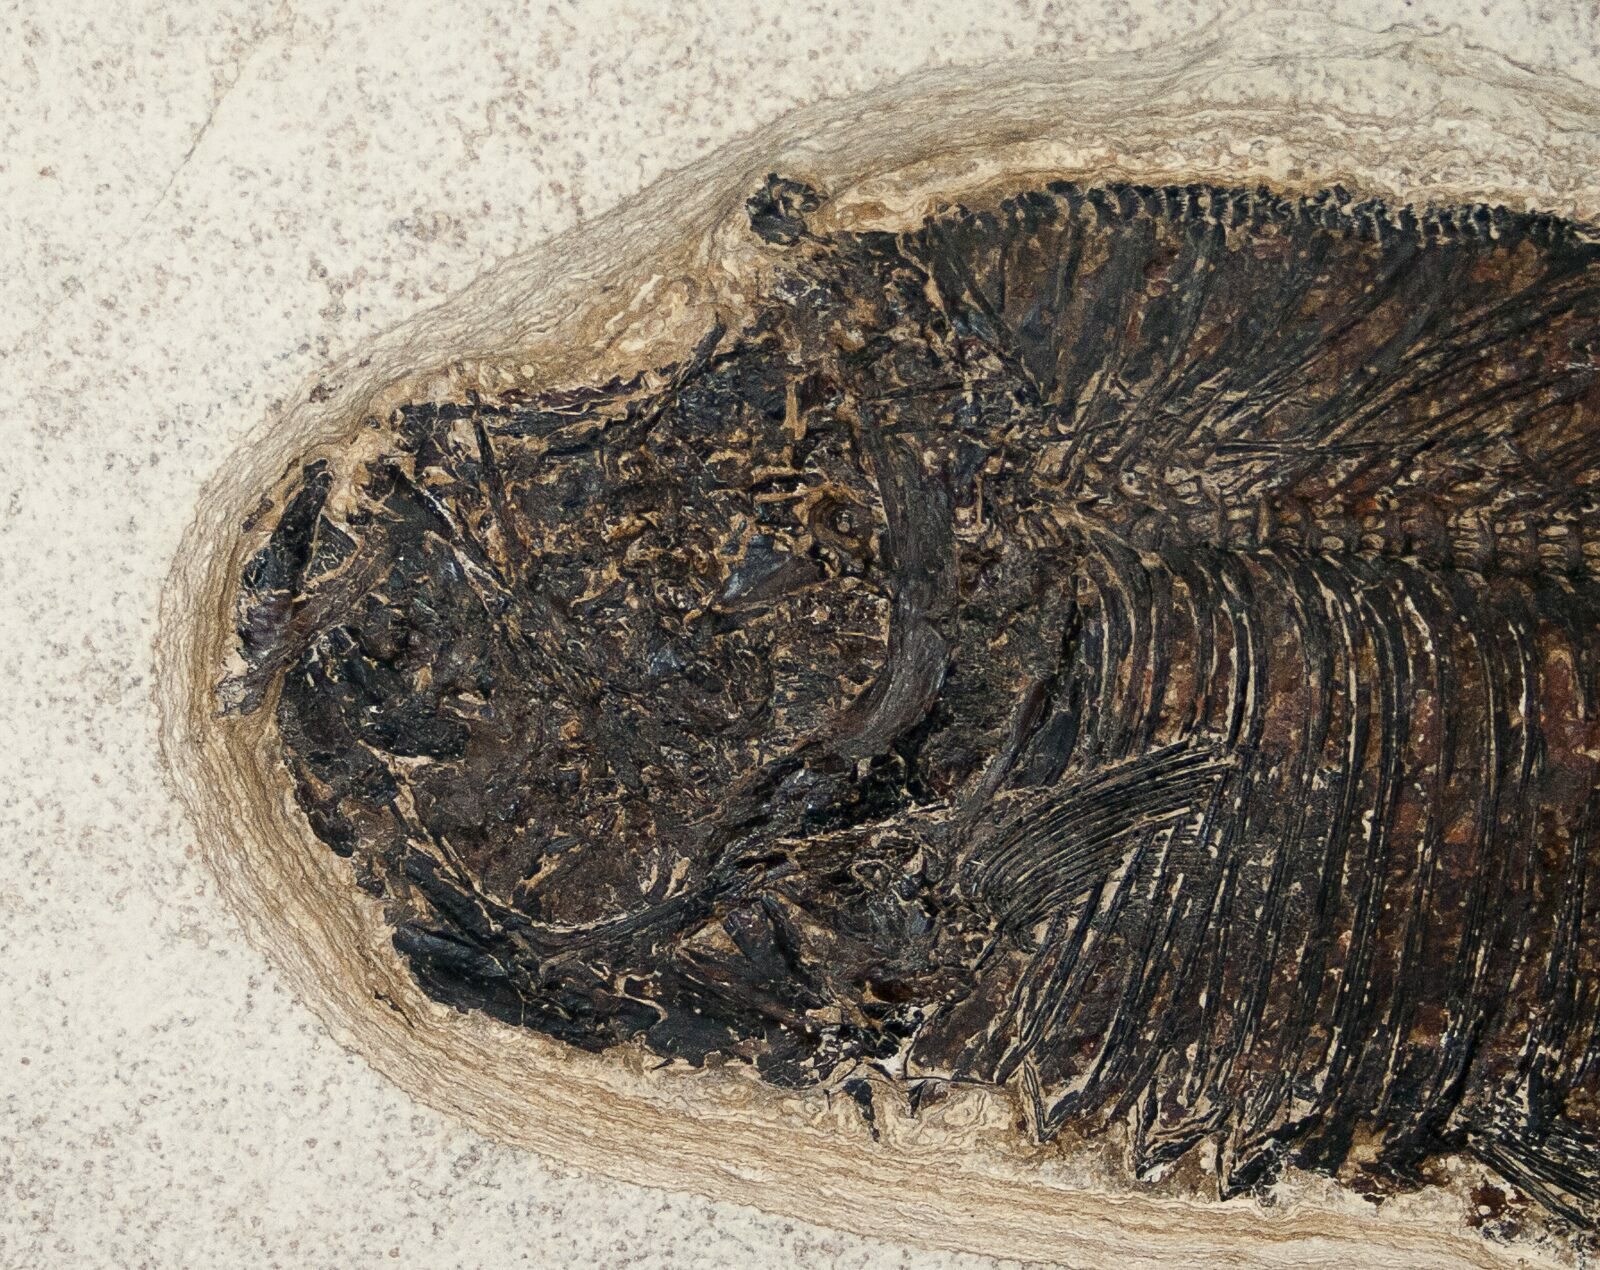 15 diplomystus fish fossil wyoming for sale 15126 for Fish fossils for sale